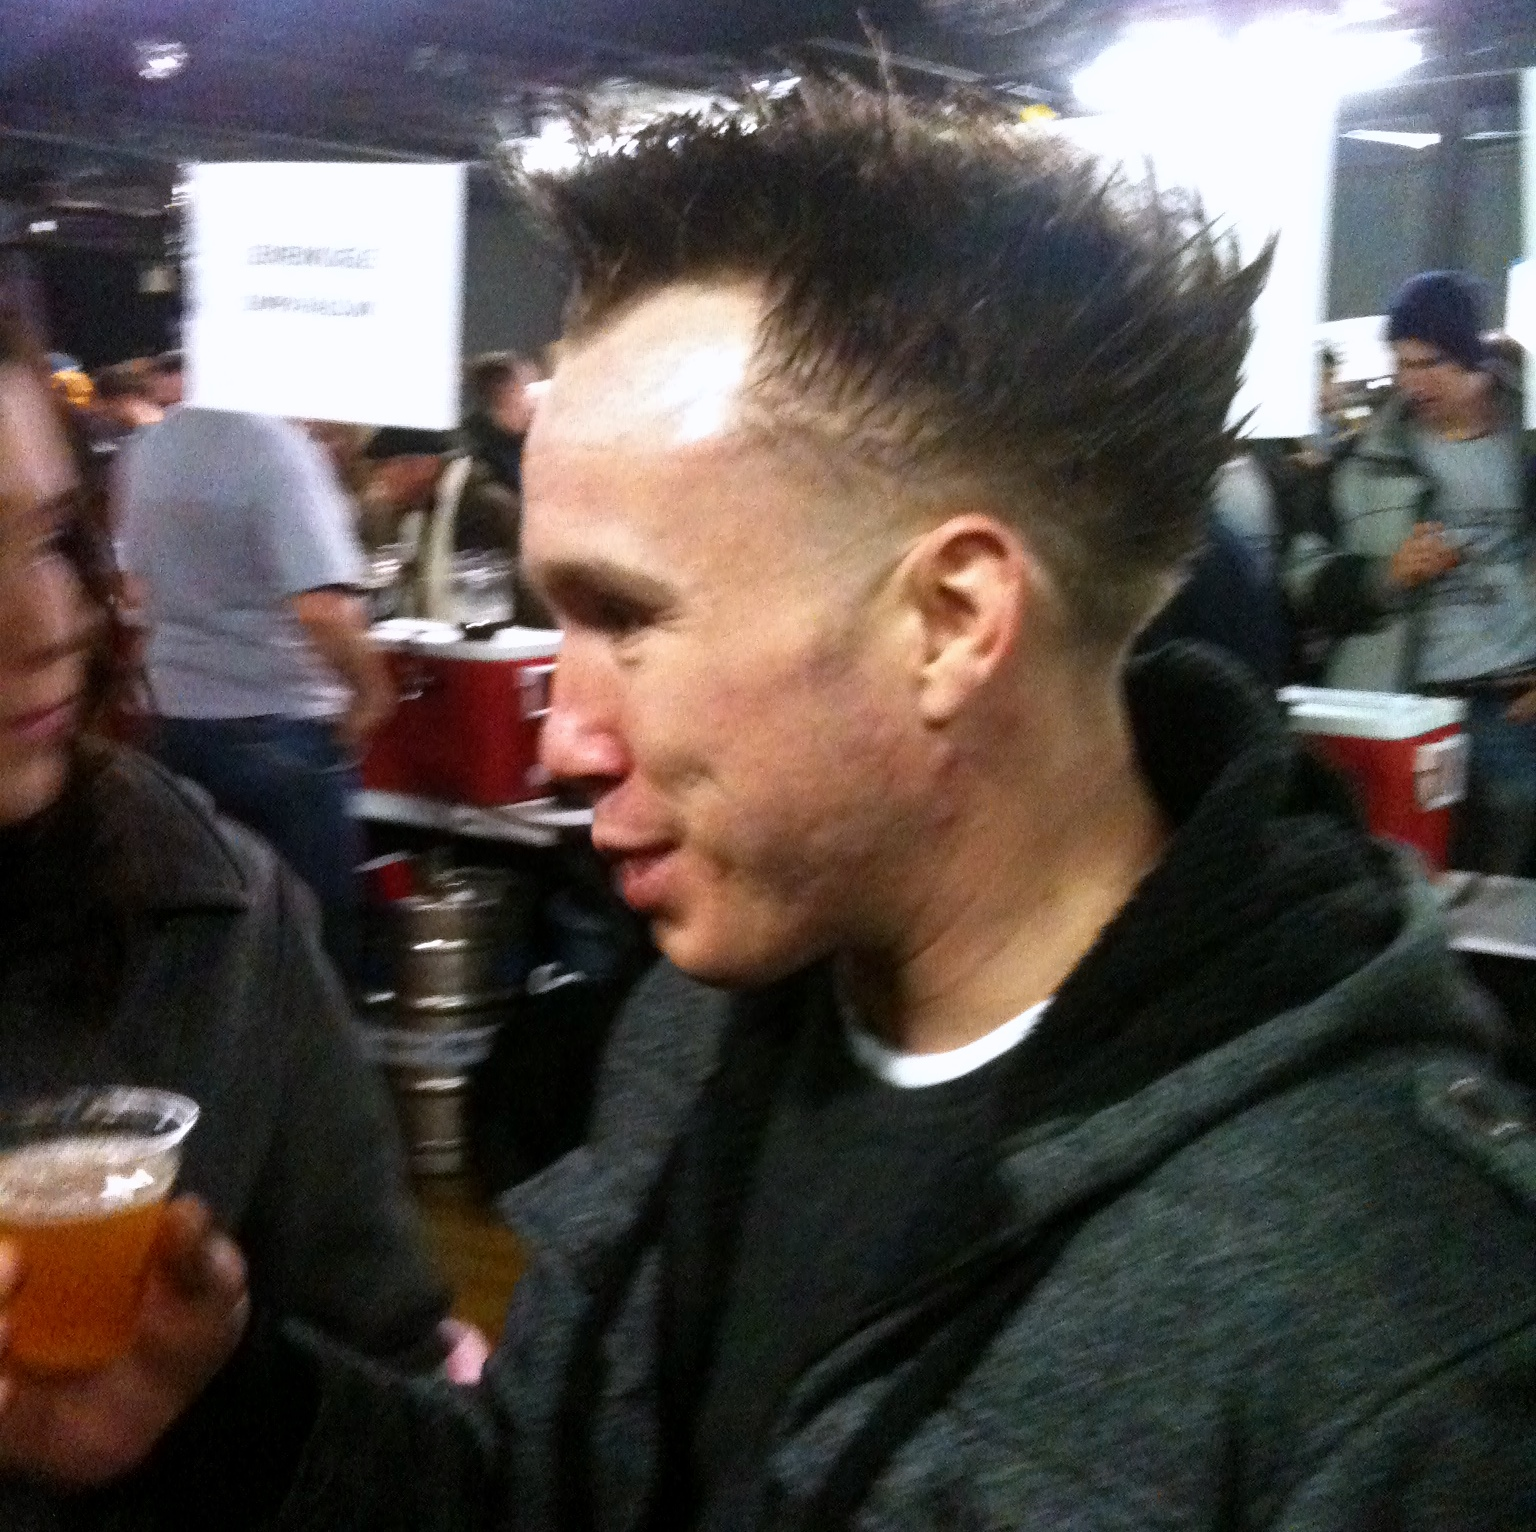 I Spent Last Saturday Shamelessly Photographing The Craft Beer Geek Version Of Pauly D In Between Gulps Of Beers Whose Average  Abv Was In The Upper 9s